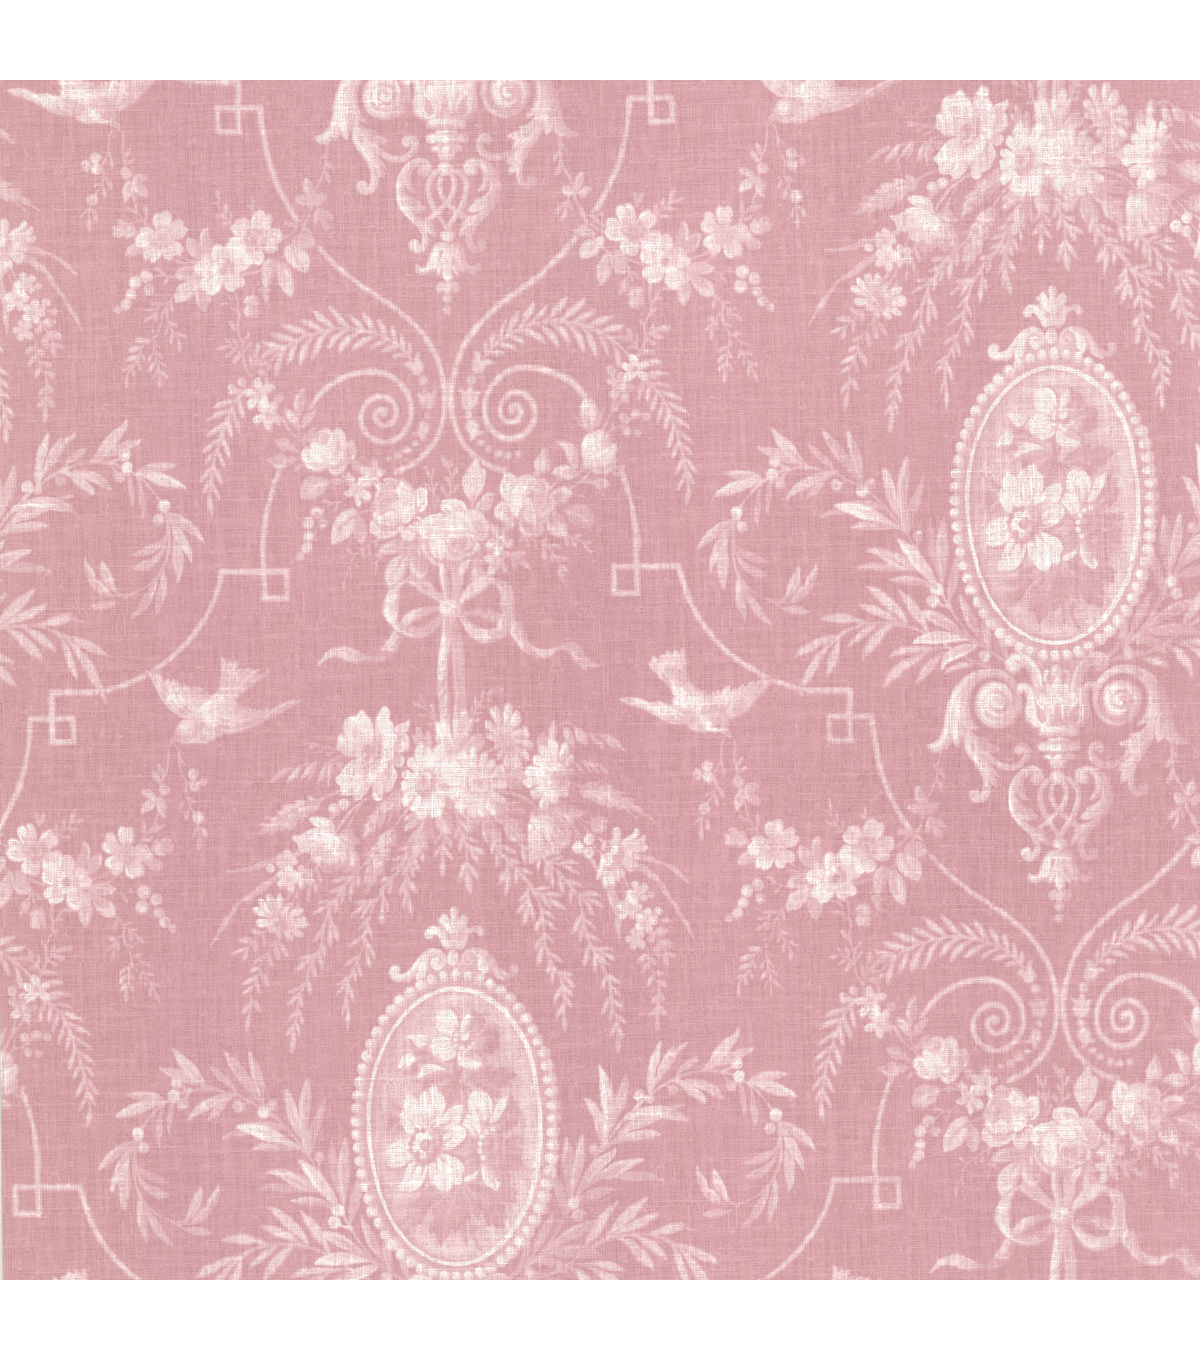 Flourish Pink Cameo Fleur Wallpaper Sample